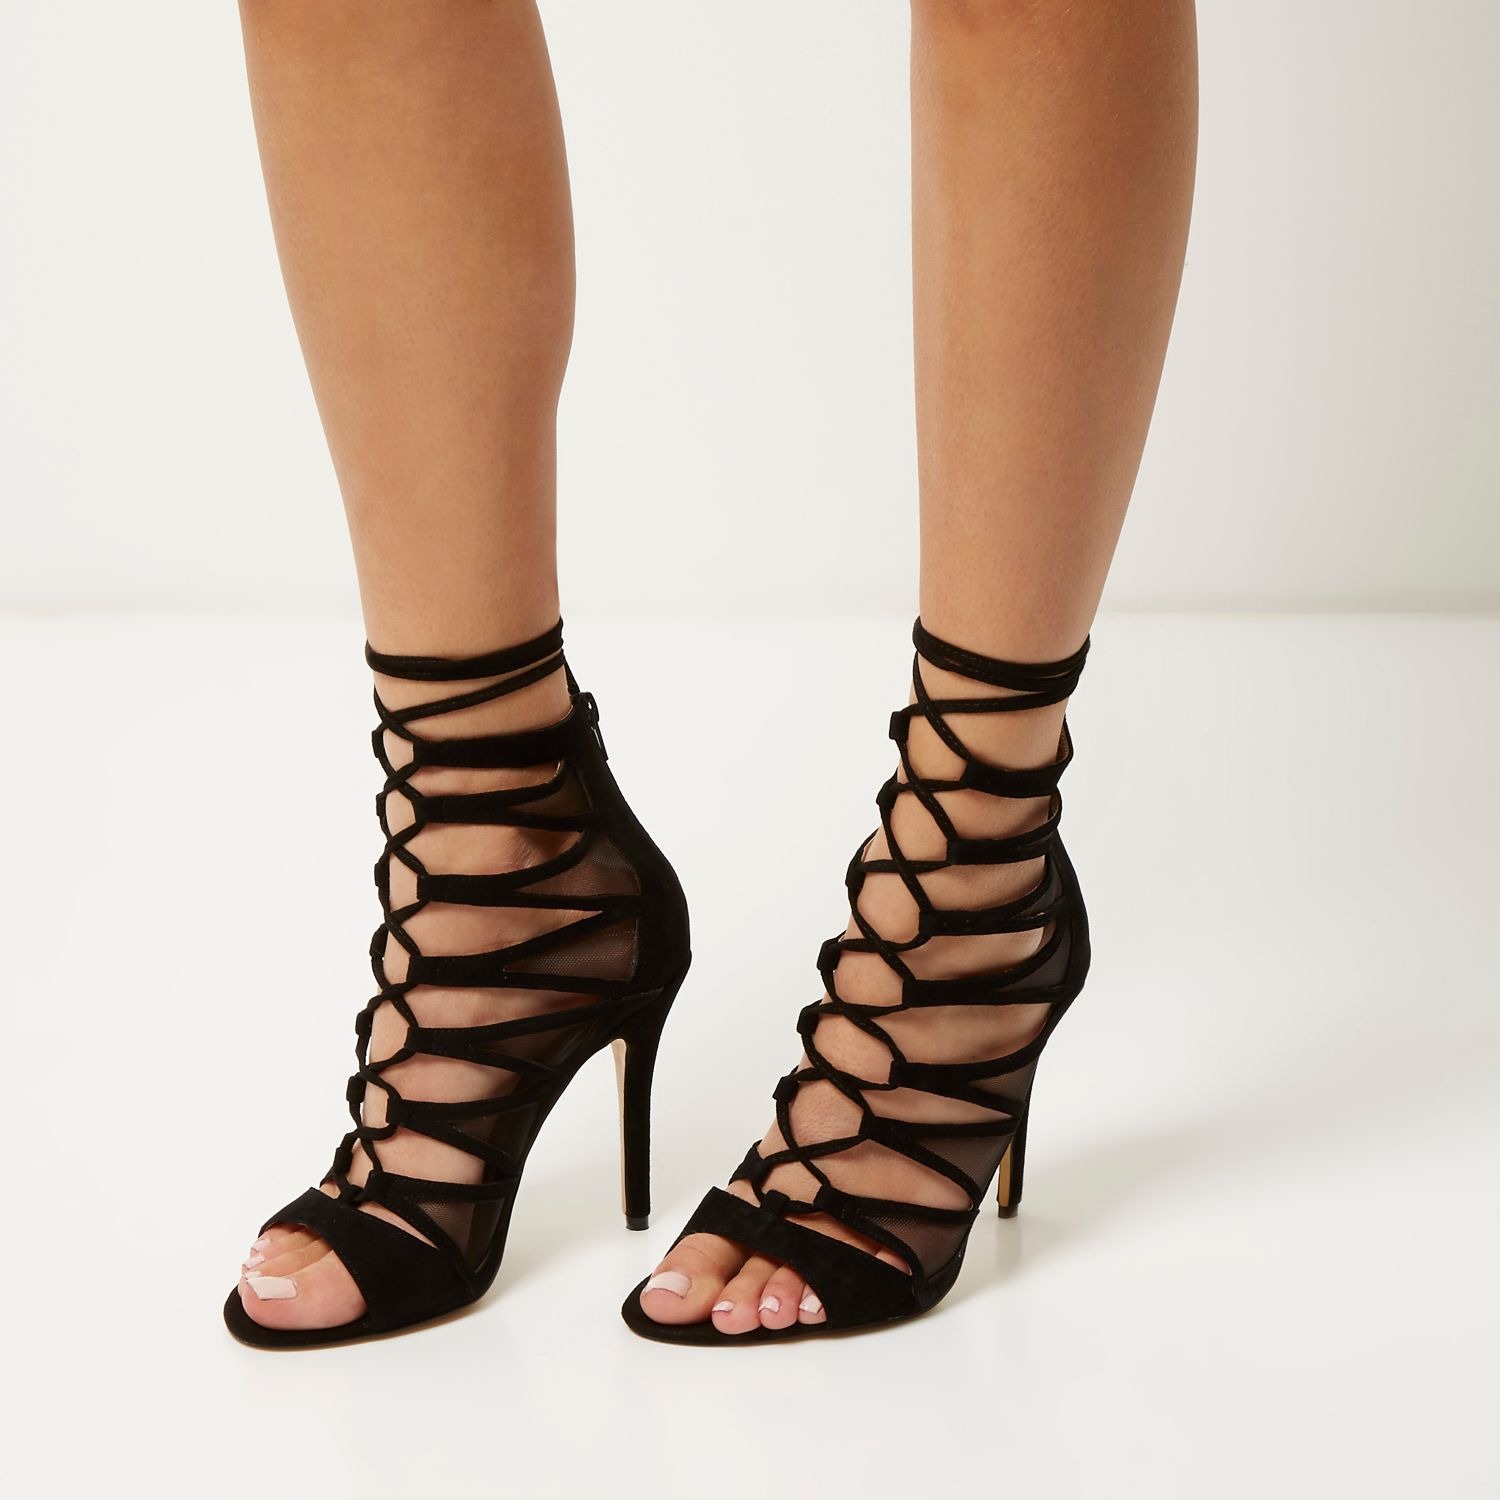 8202e2d0b7a River Island Black Suede Lace-up Caged Heels